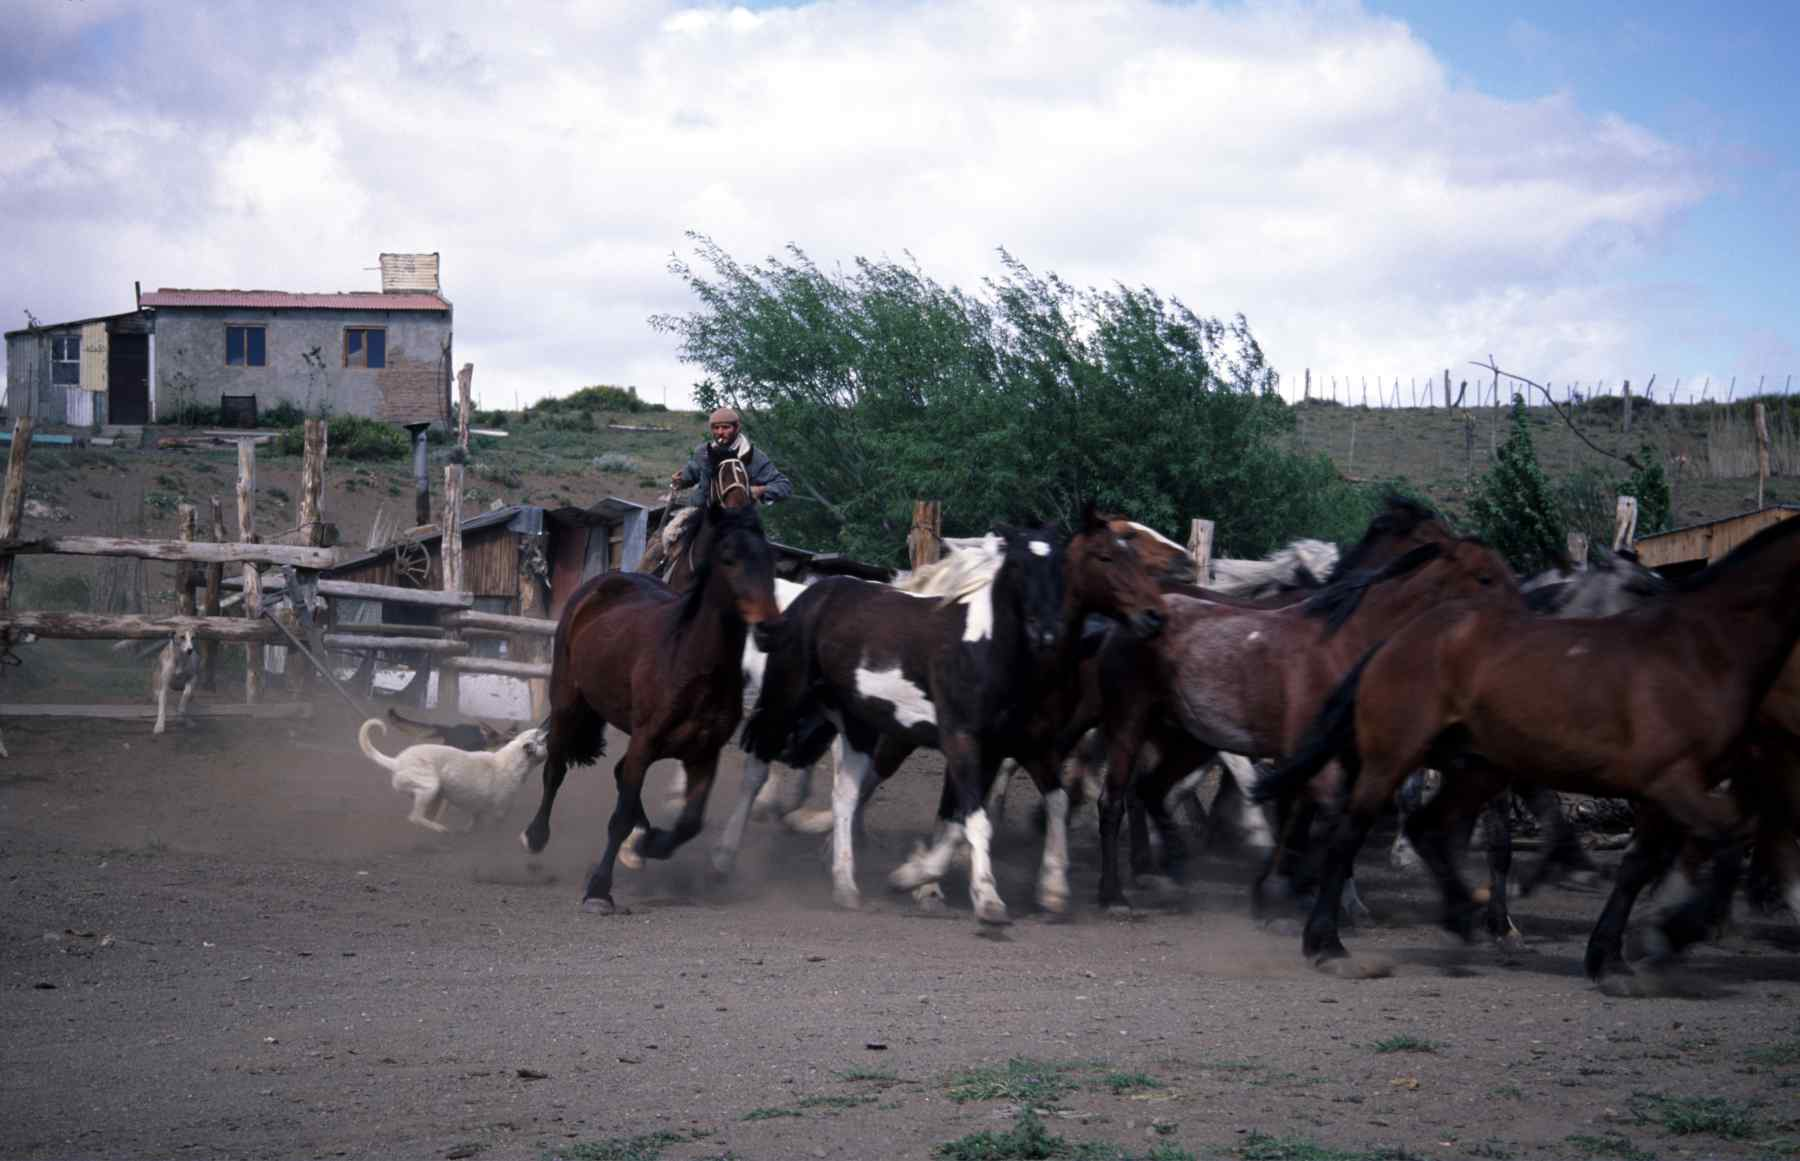 ARGENTINIAN COWBOY or GAUCHO COWBOY and his horses in PATAGONIA, ARGENTINA